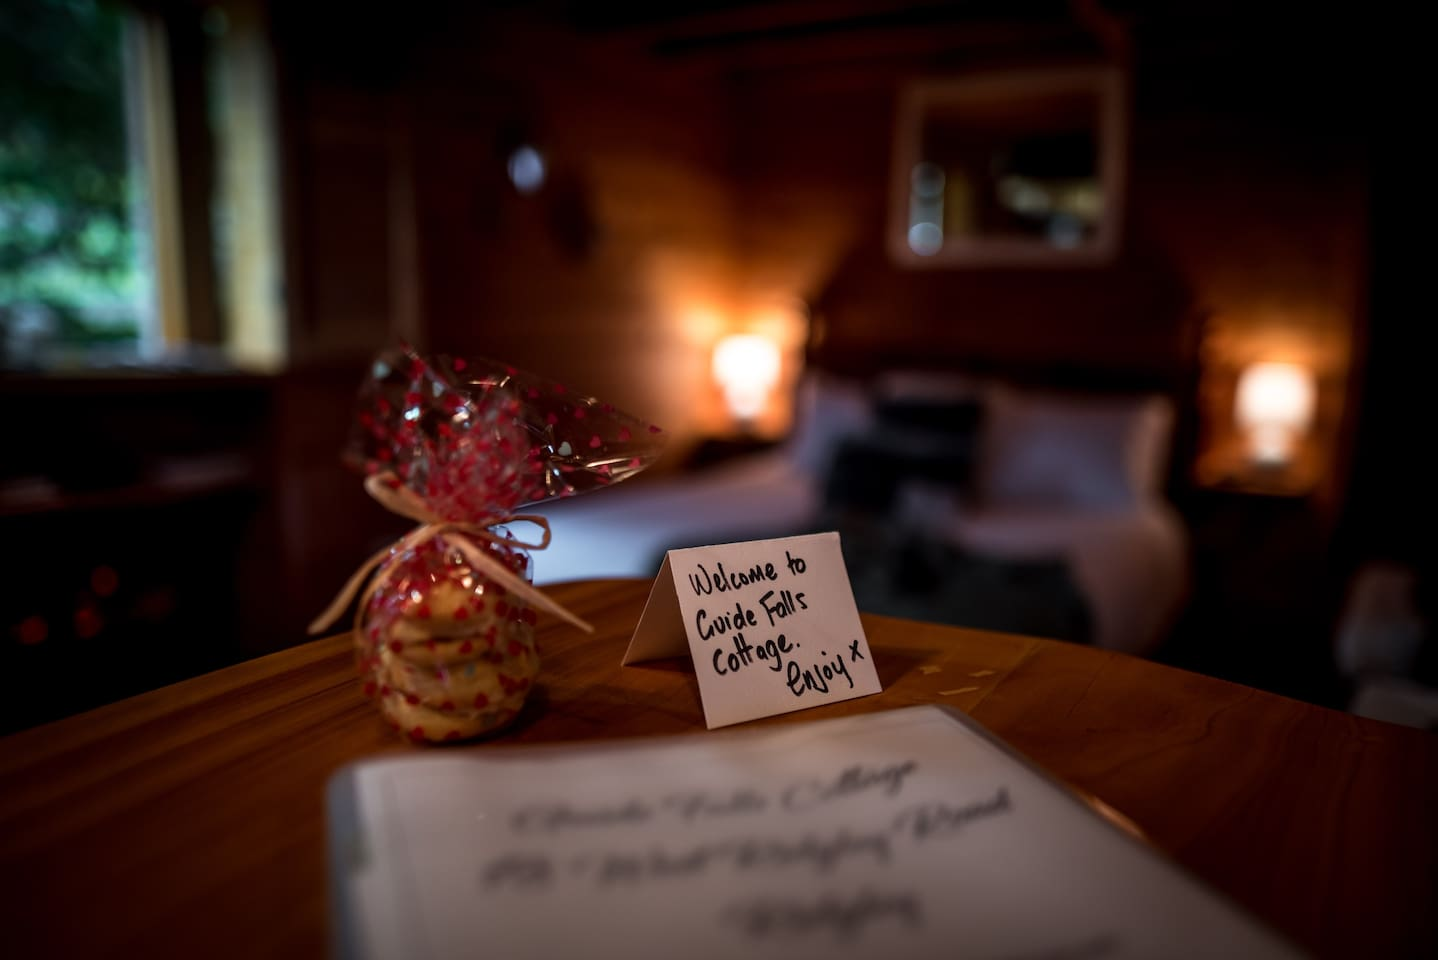 When you book at Guide Falls Romantic Cottage expect all the little touches that make your stay memorable.